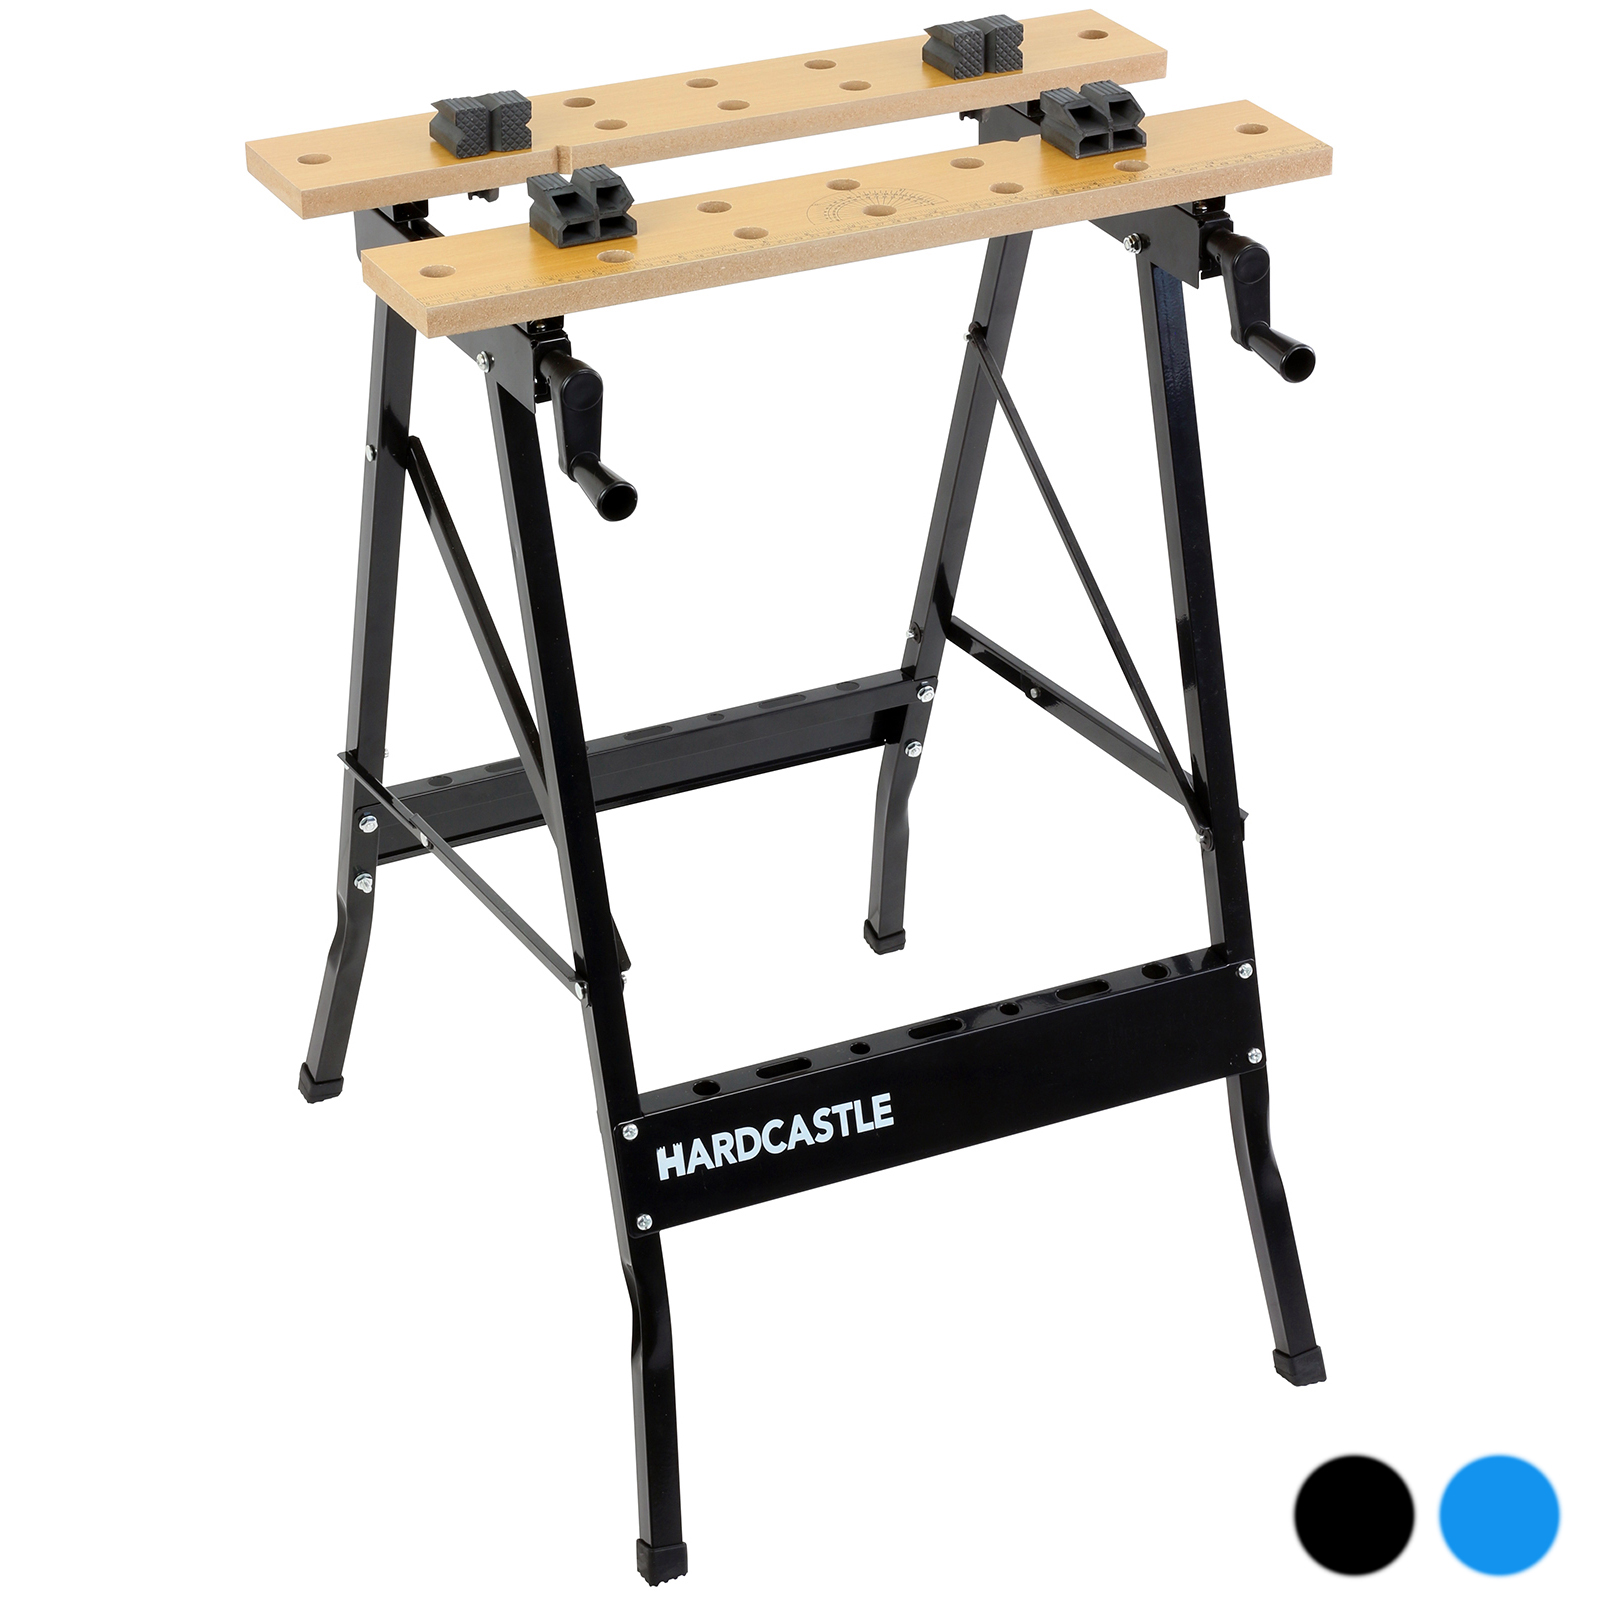 Hardcastle Folding Trestle Work Bench Stand Mate Foldable Table Clamp Workbench Ebay